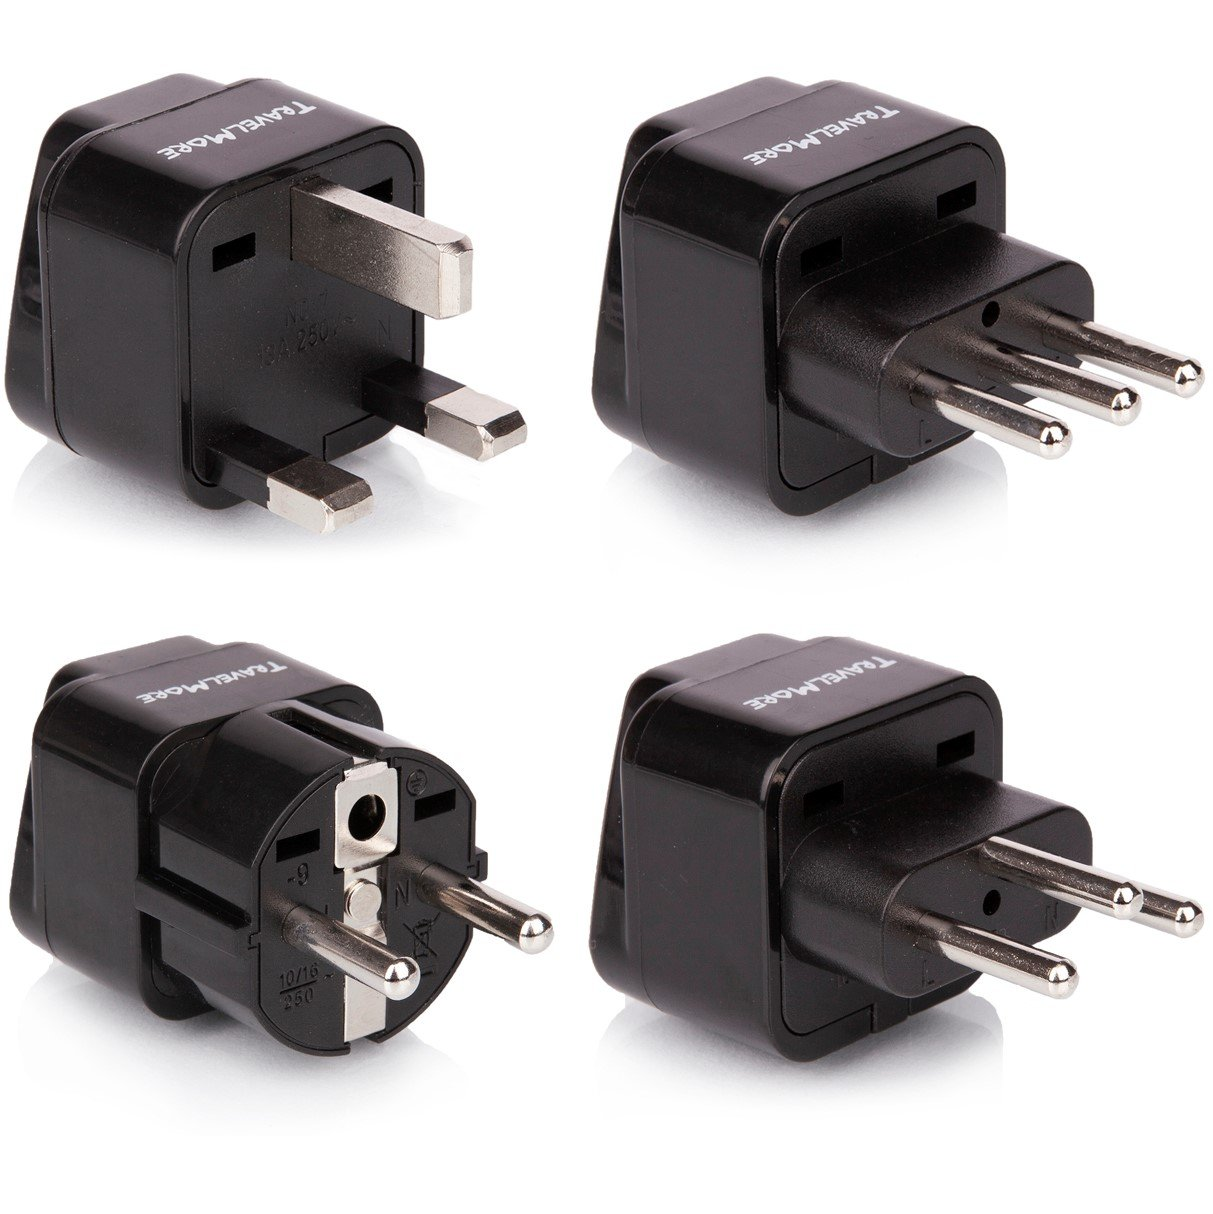 Peachy Amazon Com European Travel Adapter Plug Set Pack Of 4 Universal Wiring Cloud Hisonuggs Outletorg